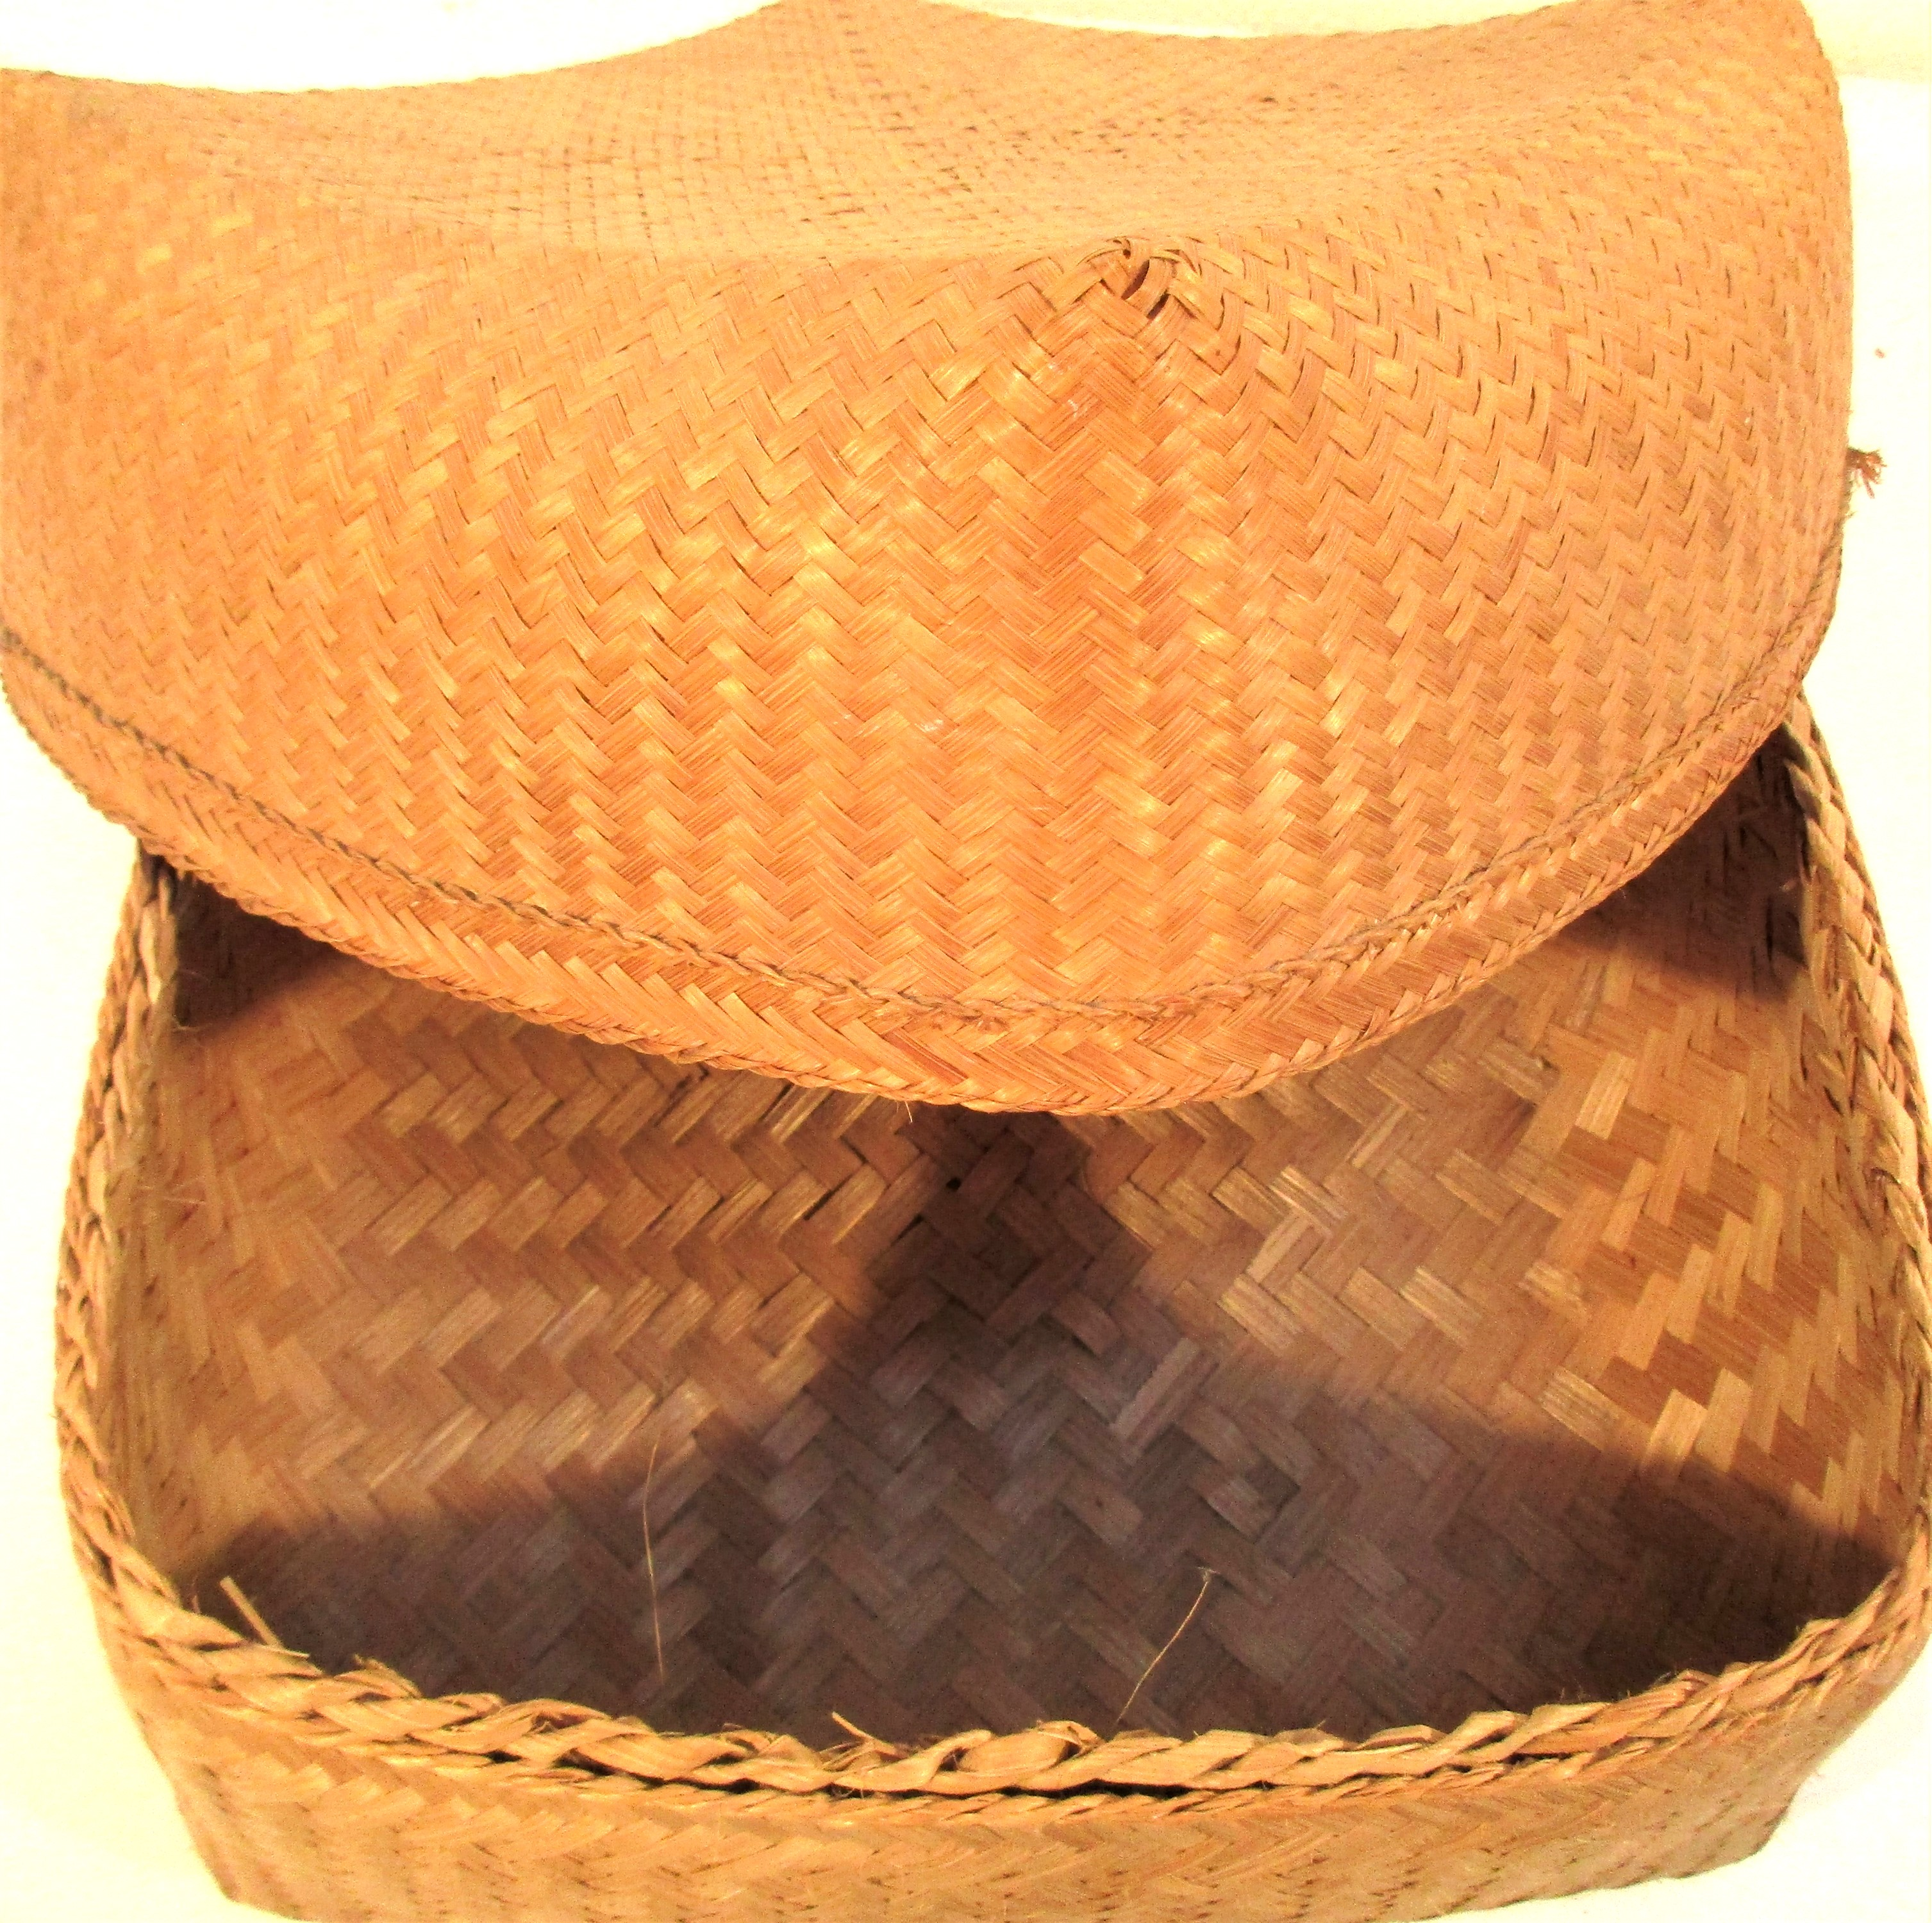 Traditional Lombok rice storage basket with lid. 28 x 28 x 17cm. - Image 2 of 2